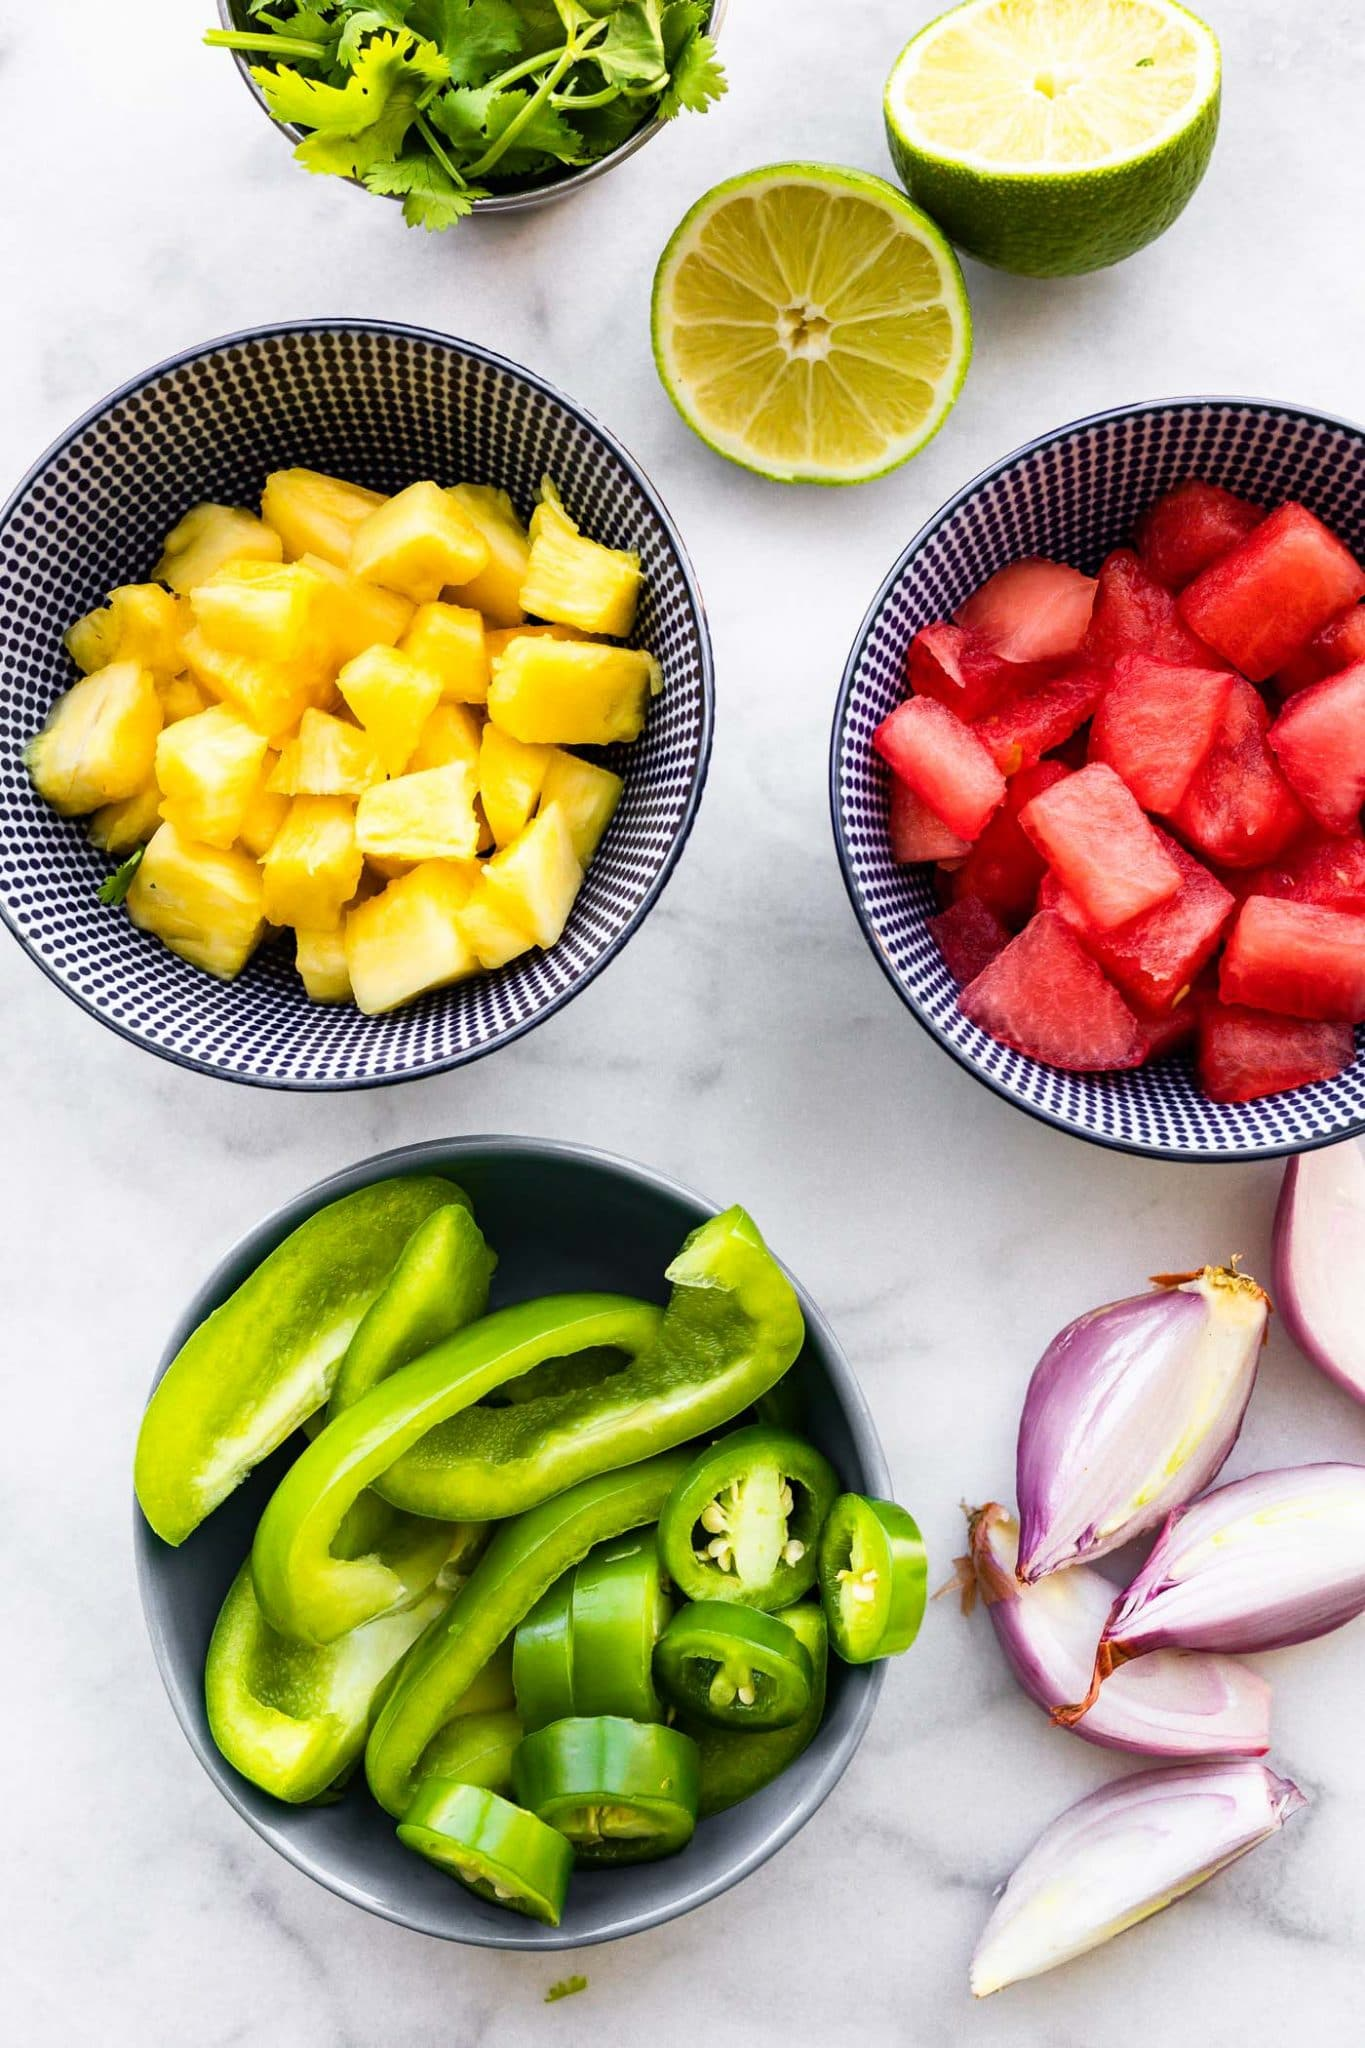 overhead image of ingredients for watermelon pineapple salsa in bowls on the table.